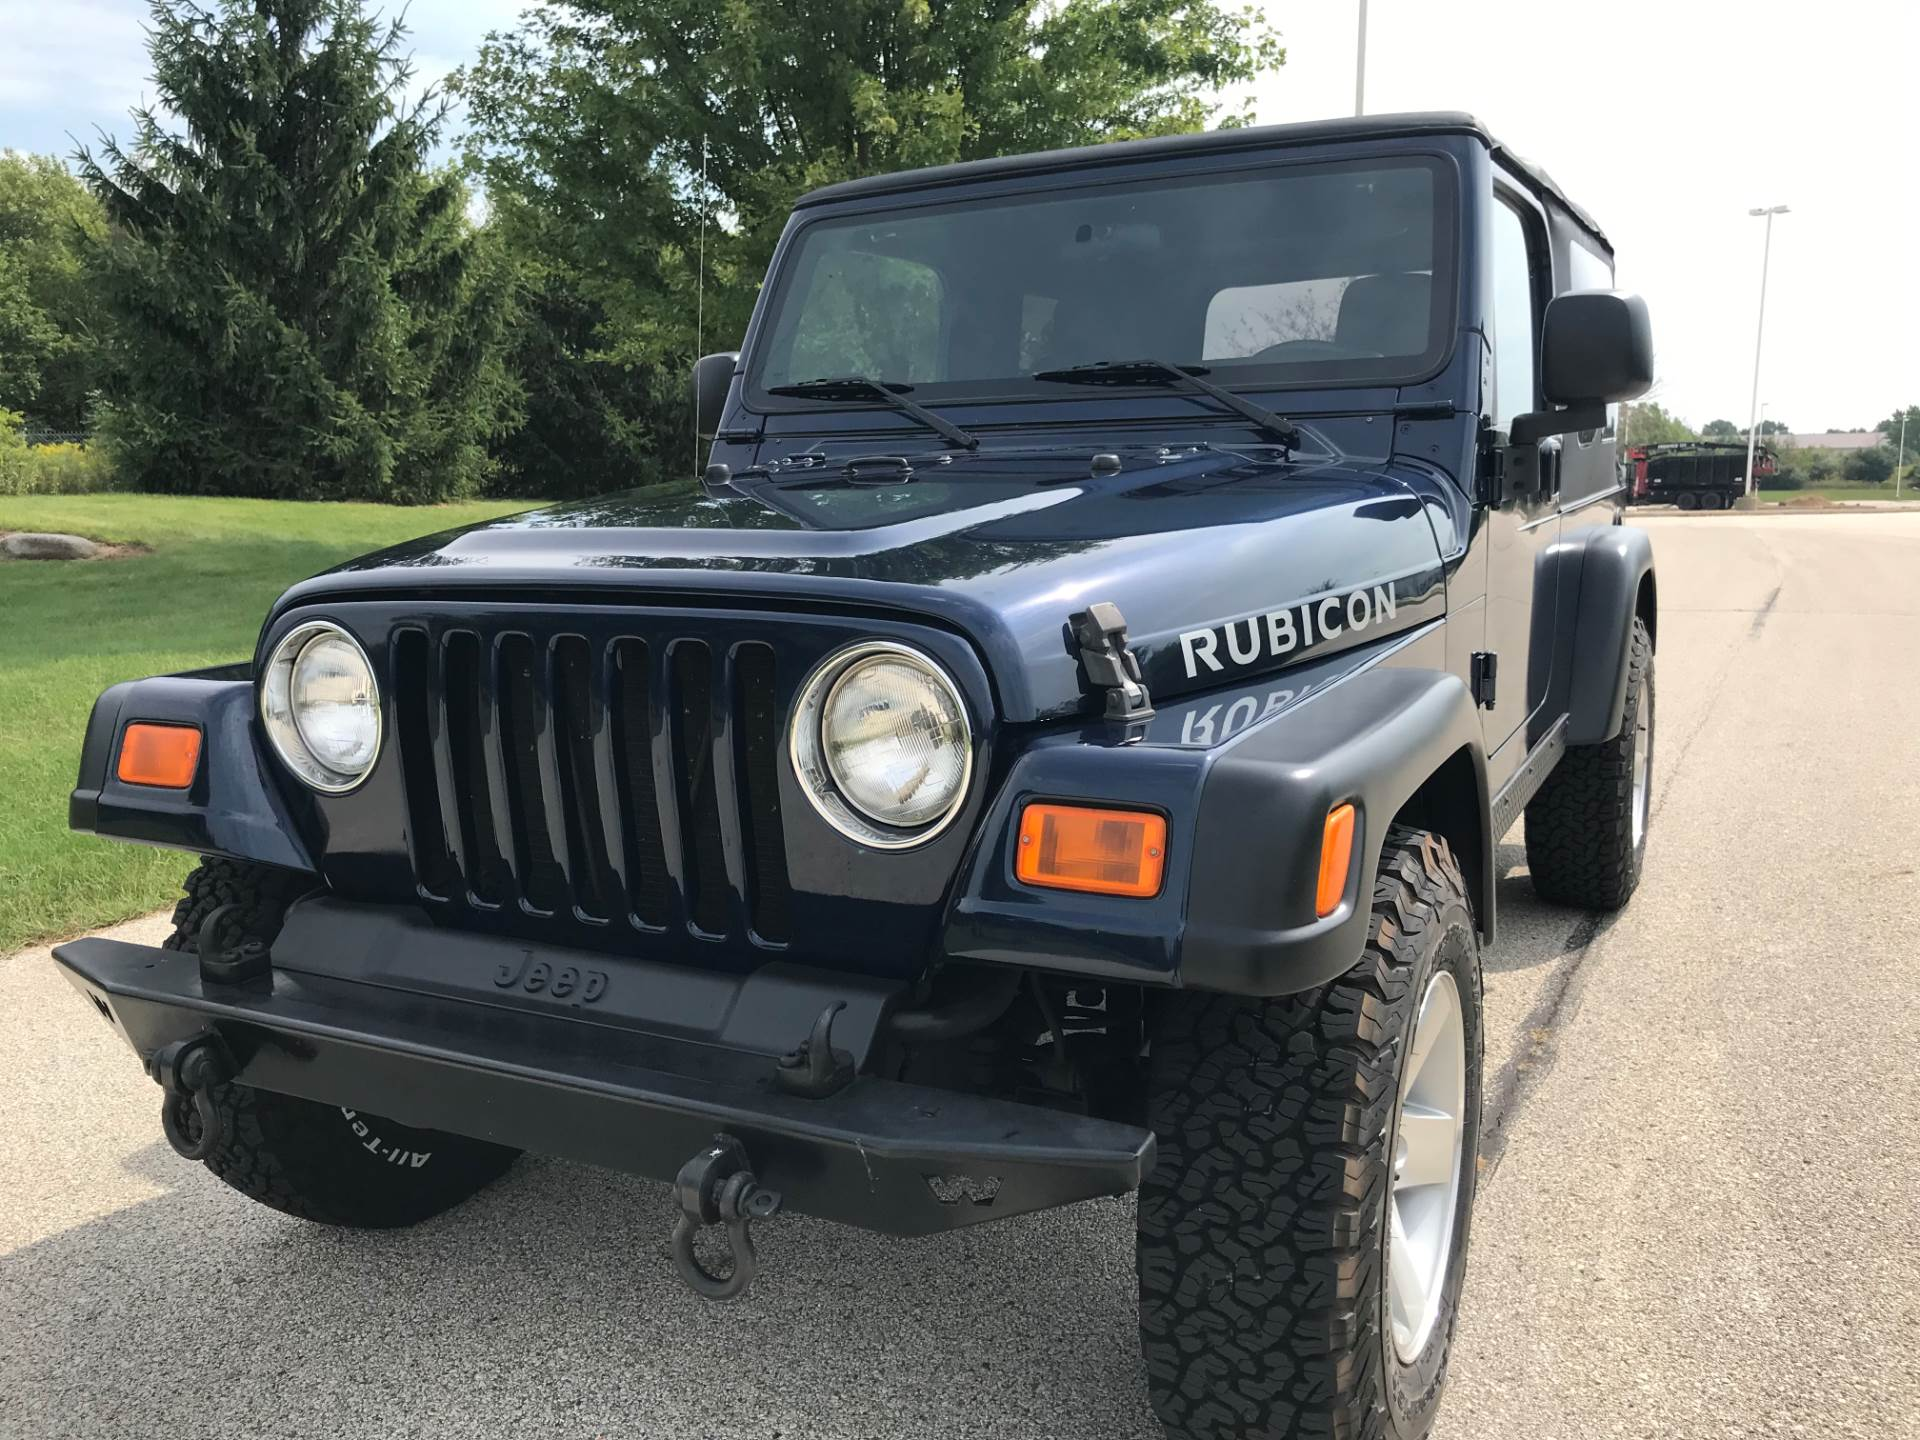 2006 Jeep Wrangler Unlimited Rubicon 2dr SUV 4WD in Big Bend, Wisconsin - Photo 88